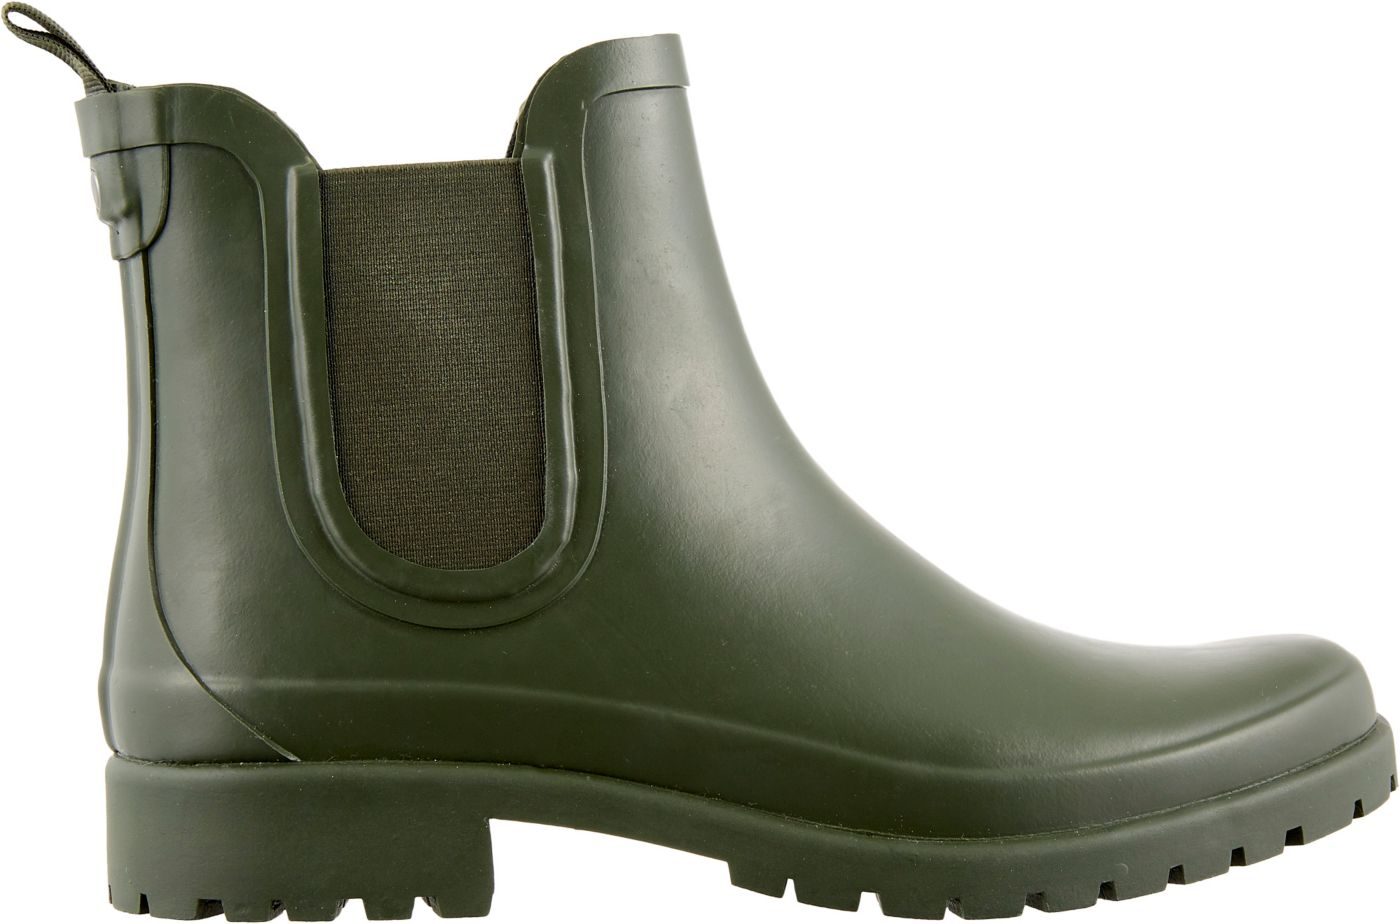 Alpine Design Women's Ankle Rain Boots